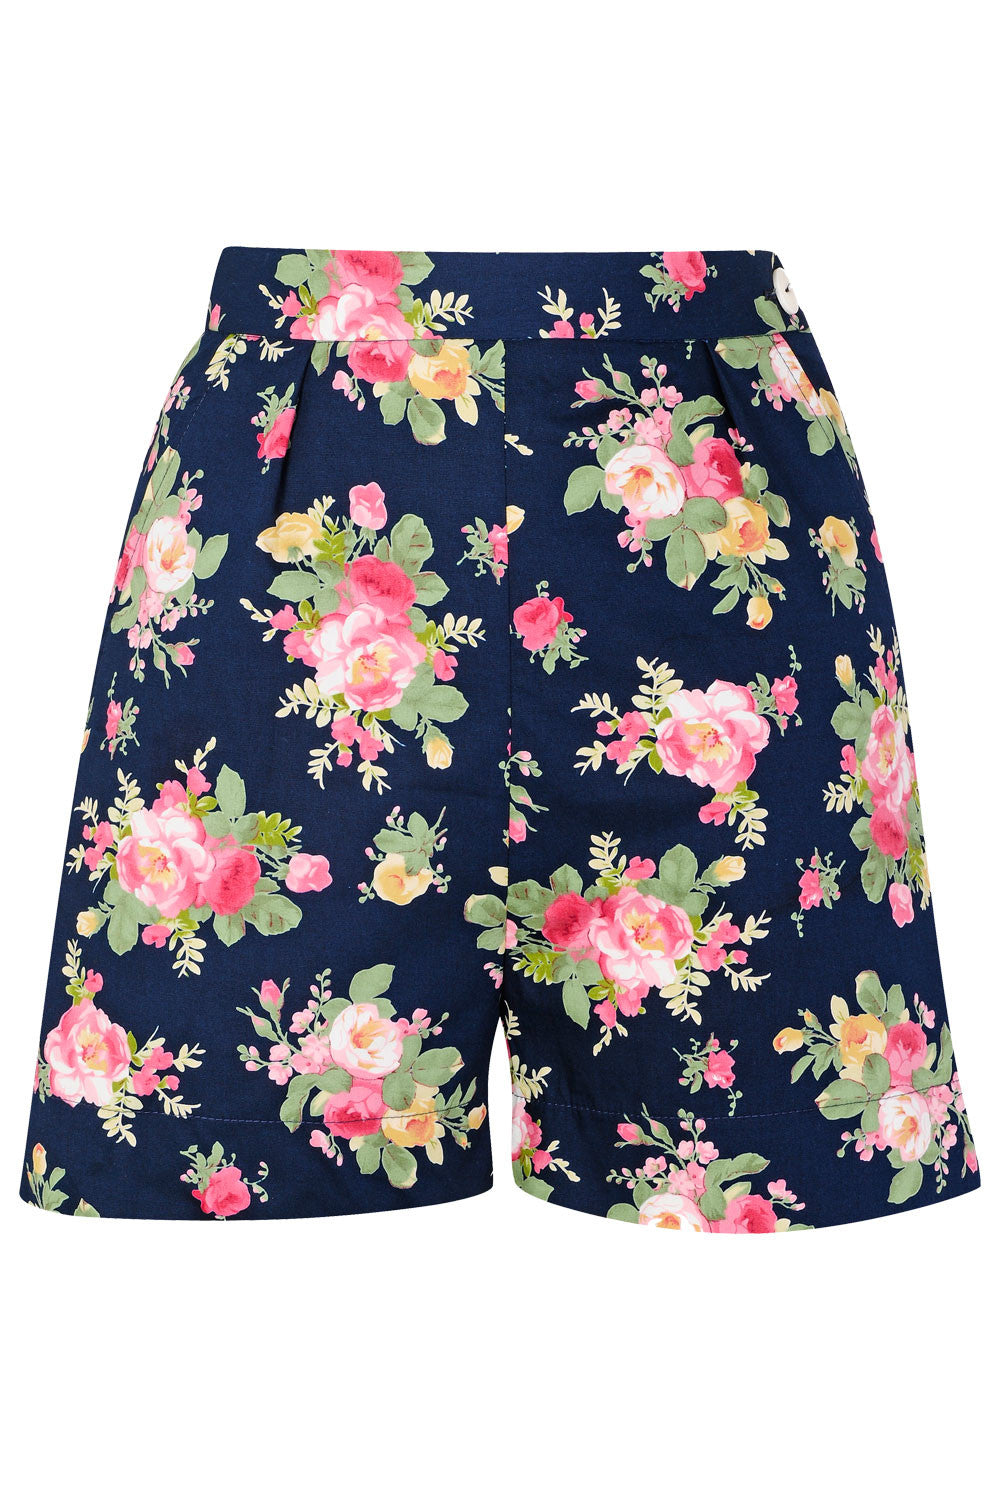 The Printed Shorts - Navy Floral